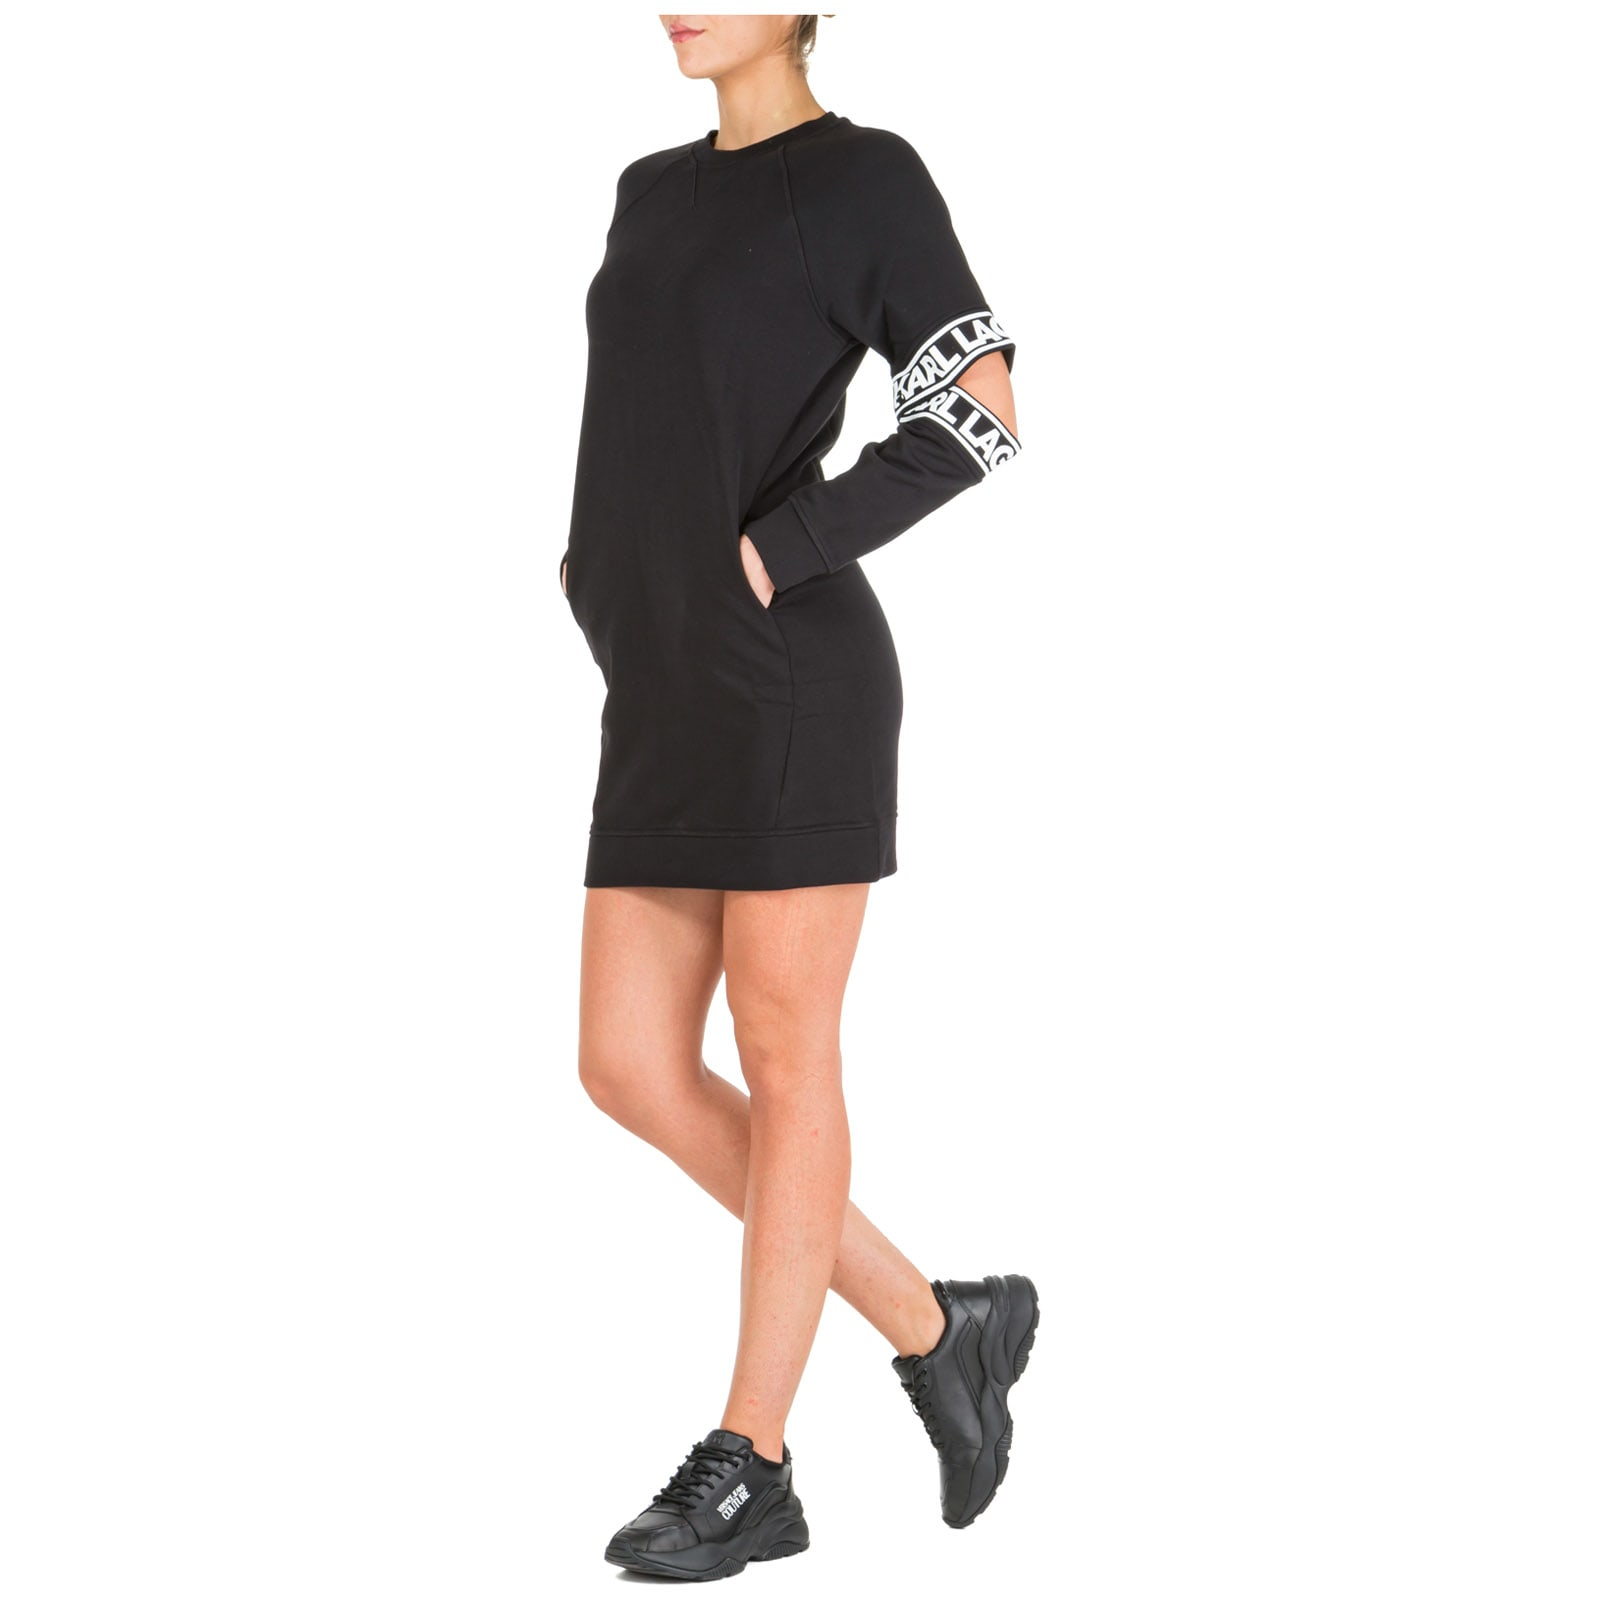 Karl Lagerfeld Knee Length Dress Long Sleeve